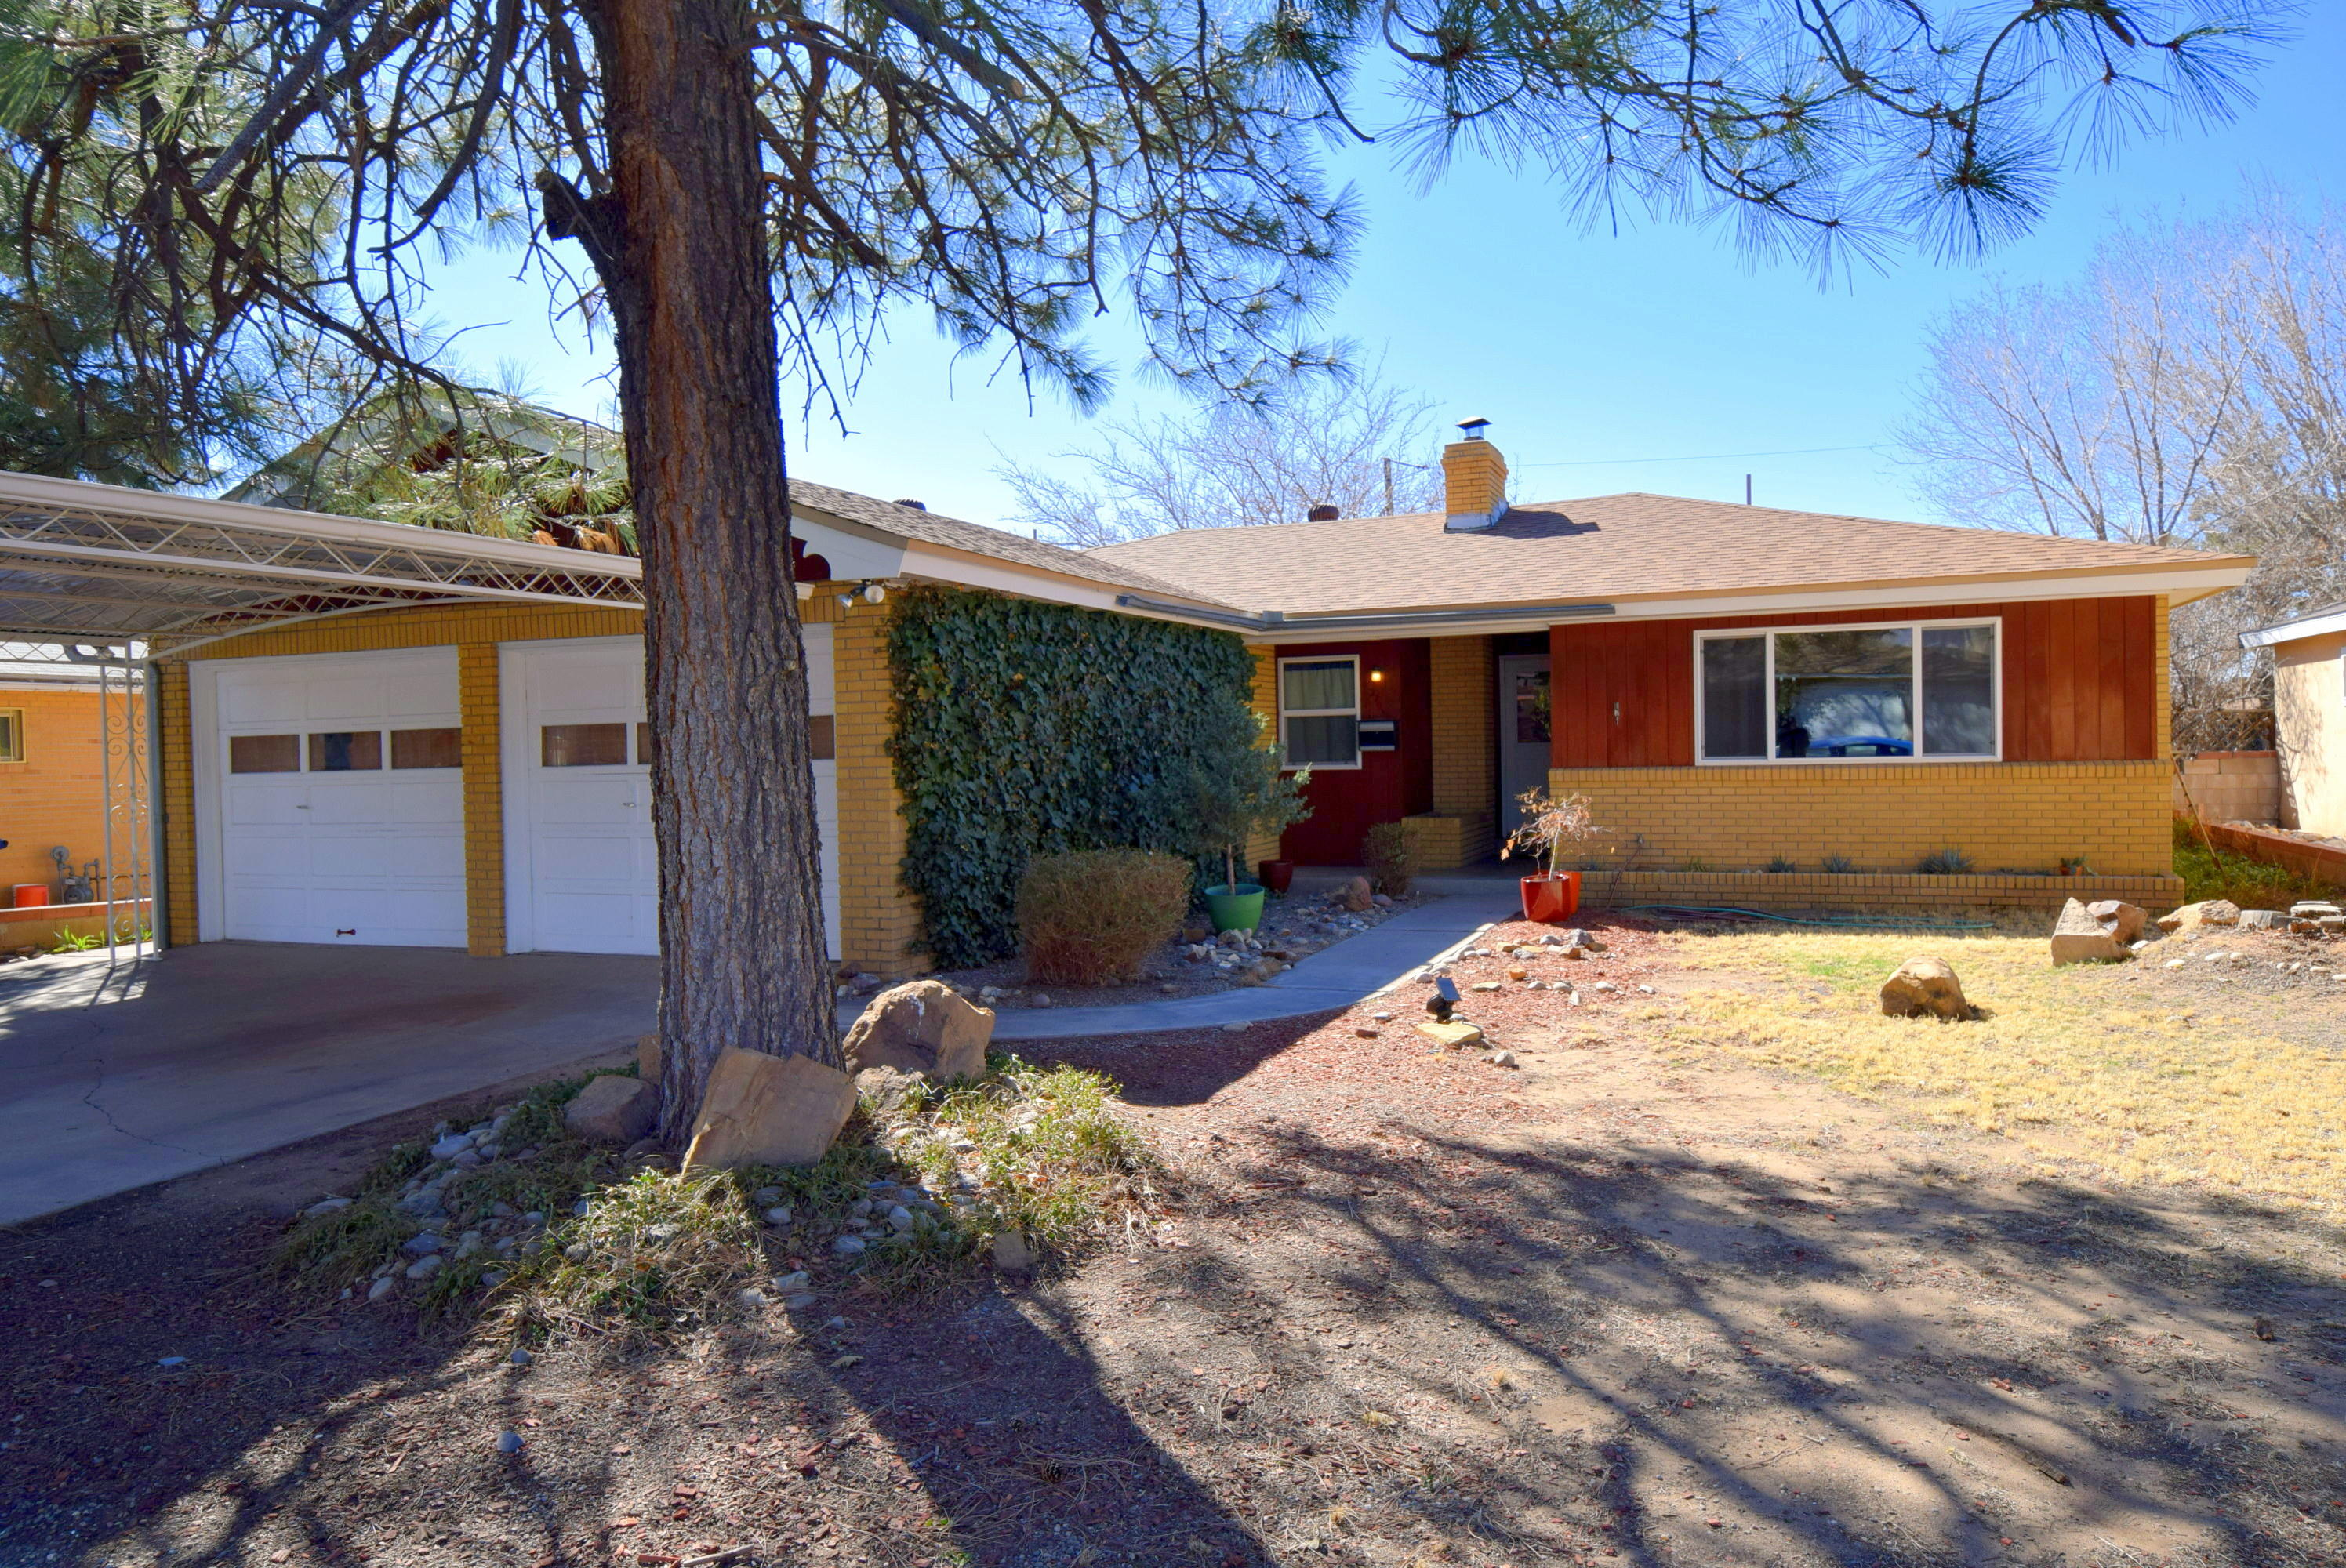 Fantastic uptown location. This all brick veneer  home is located in the heart of Albuquerque.  All three spacious bedrooms, a large living room and the hall have original hardwood floors. This house has a oversize double car garage plus a double car carport.  There is a wood burning fireplace in the dining/family room adjacent to the kitchen. You will love the separate utility room on laundry day. The roof, water heater, patio door and double pane thermal windows were replaced in 2017.